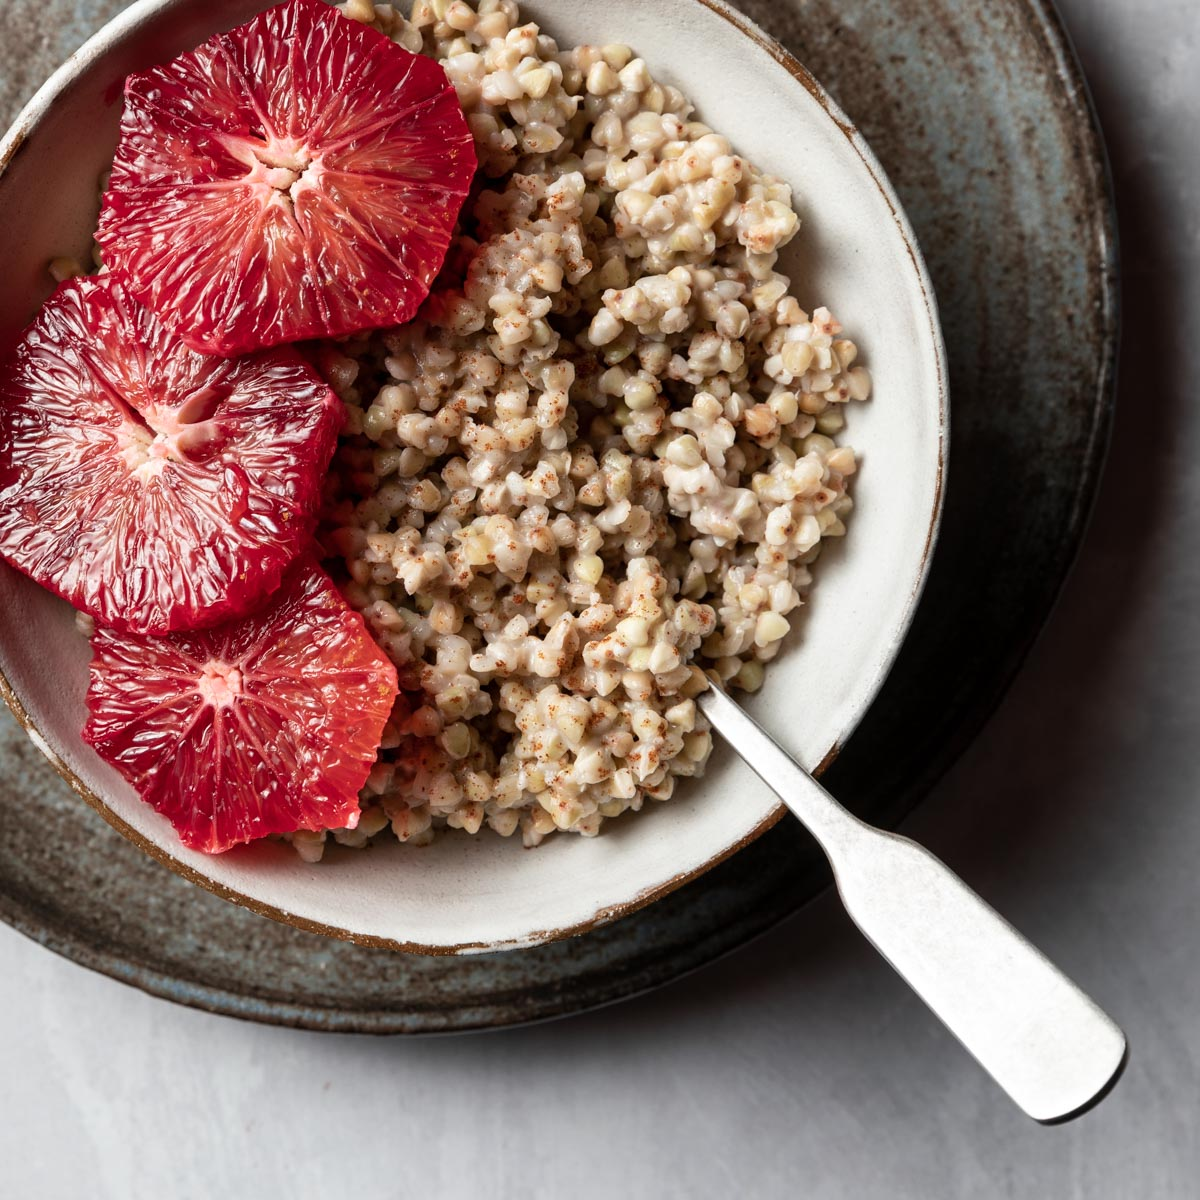 Buckwheat that's been quickly simmered in coconut milk and maple syrup is topped off with slices of blood oranges to make a quick and hearty breakfast.